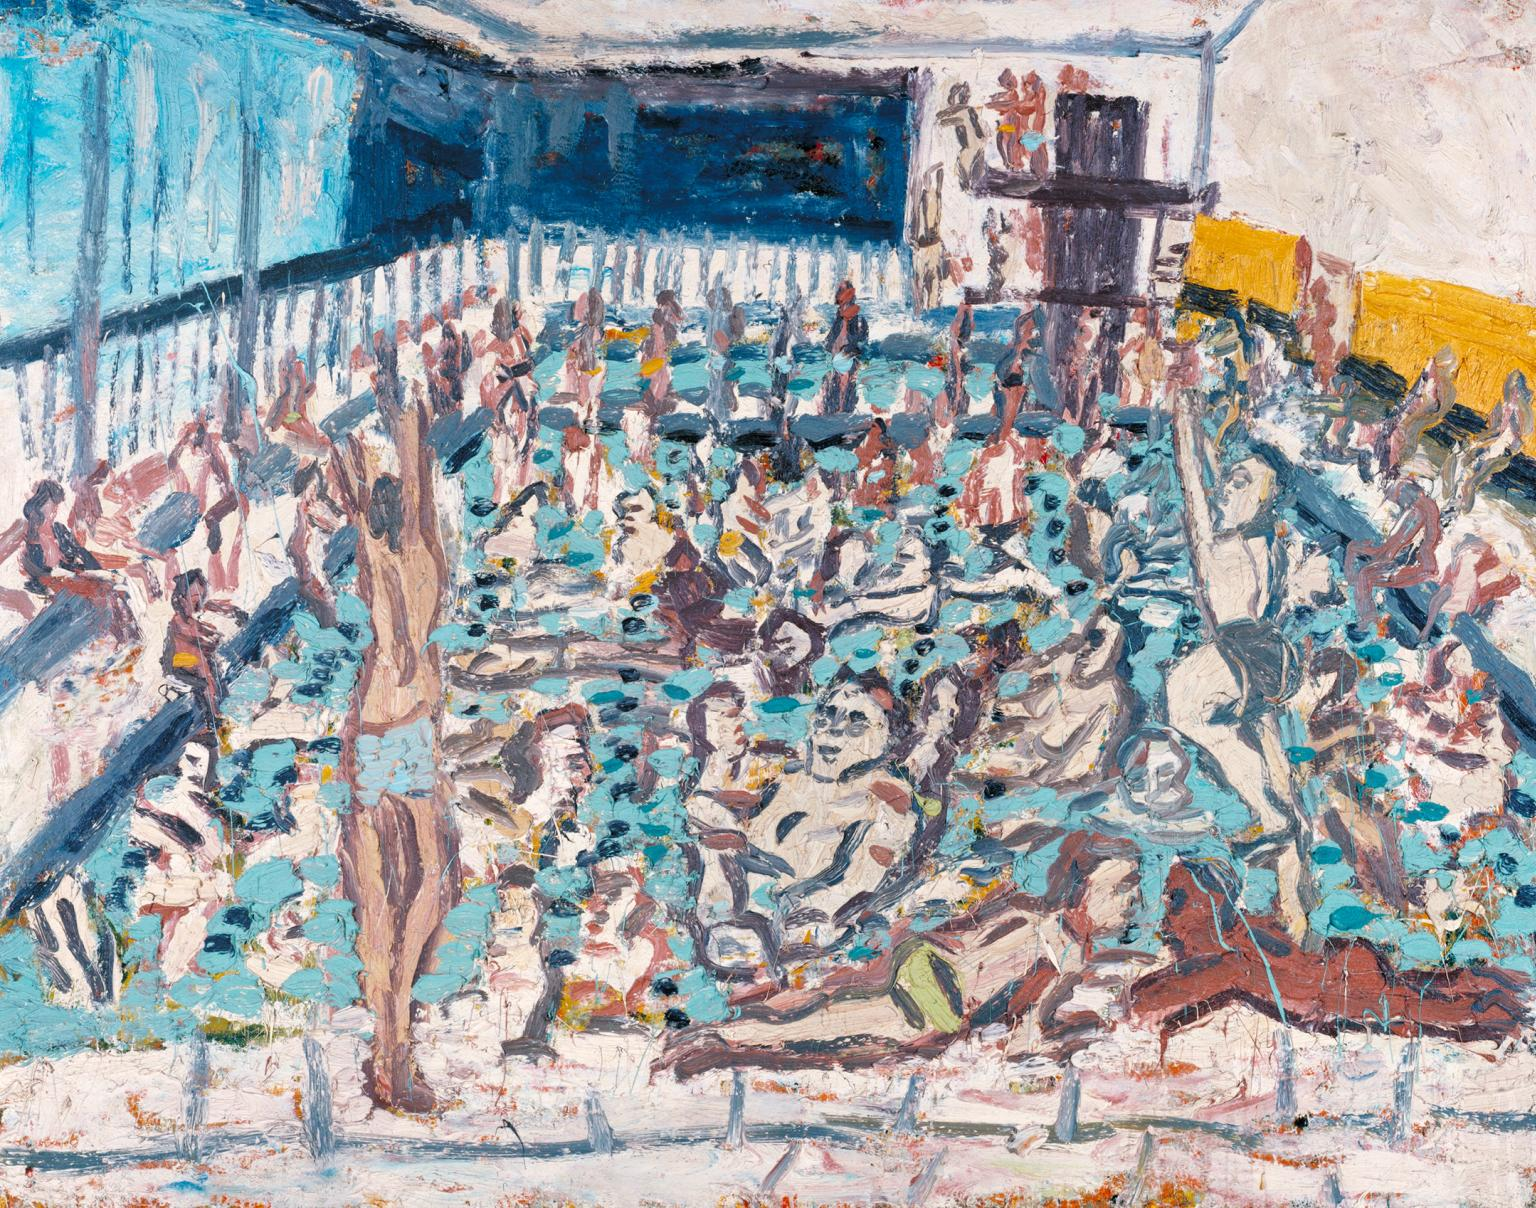 Leon Kossoff,  Children's Swimming Pool, Autumn Afternoon,  1971